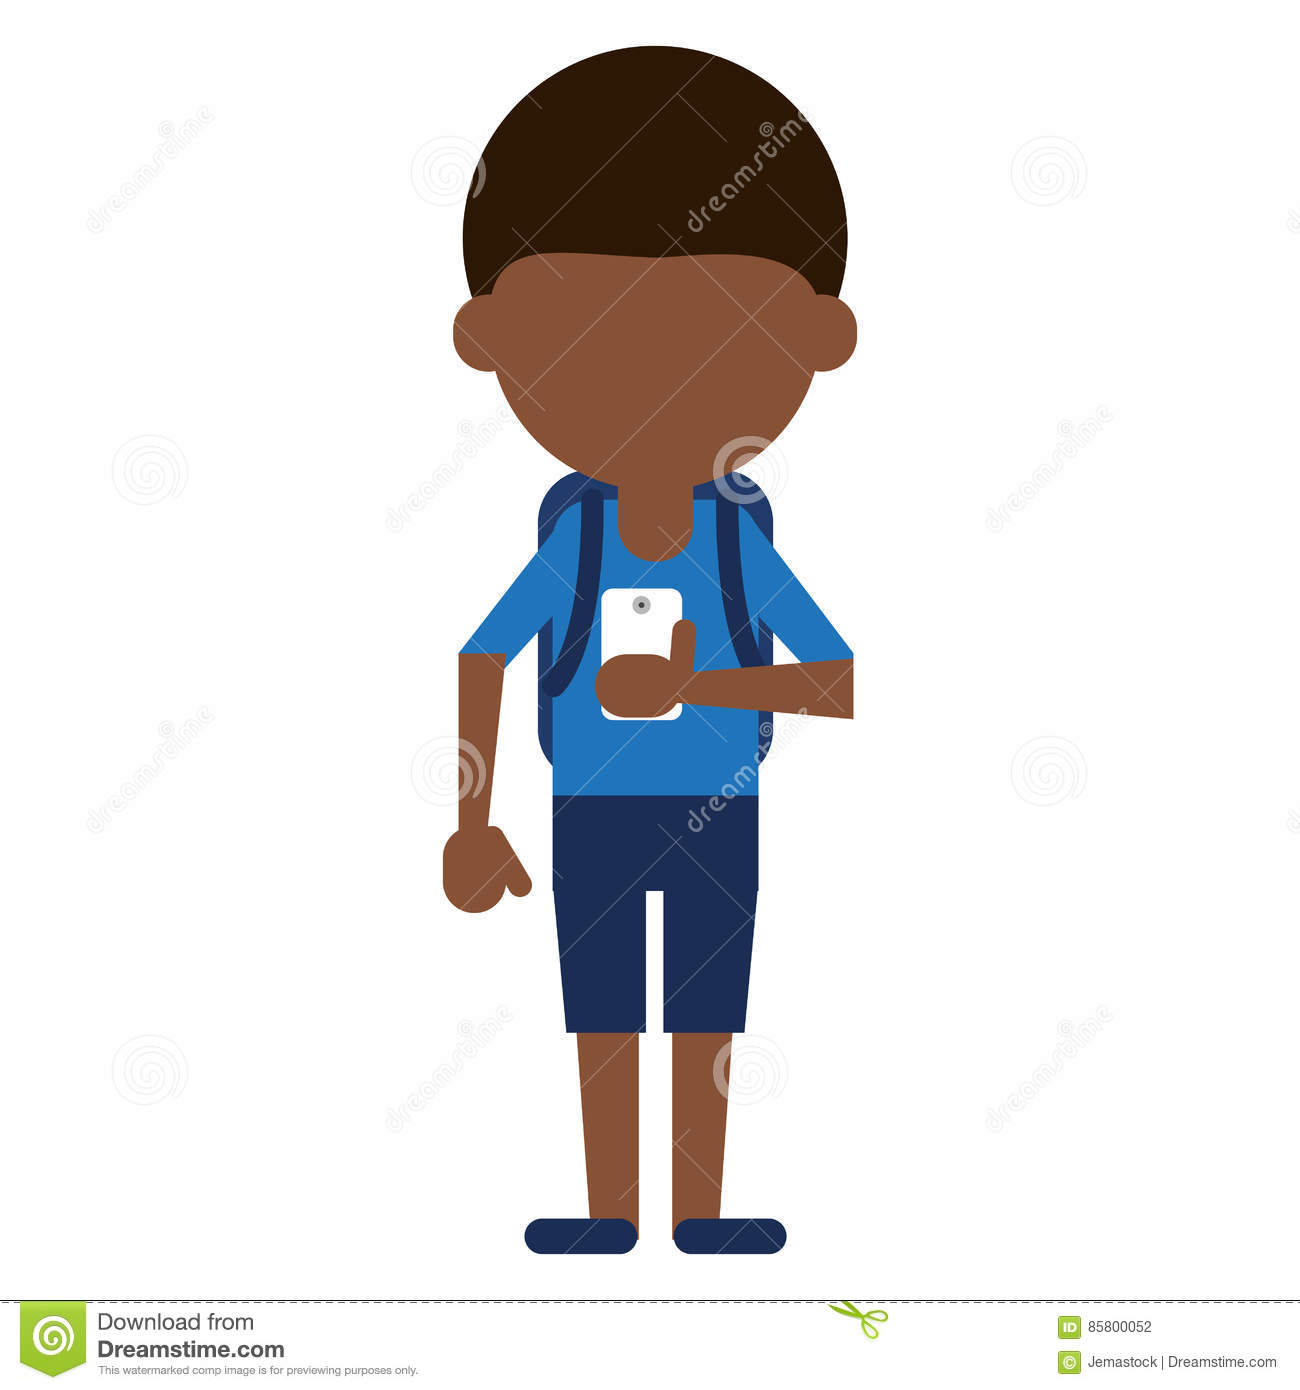 Social media cell phone photo clipart banner freeuse library Young Boy Looking Cellphone Social Media Stock Vector - Image ... banner freeuse library